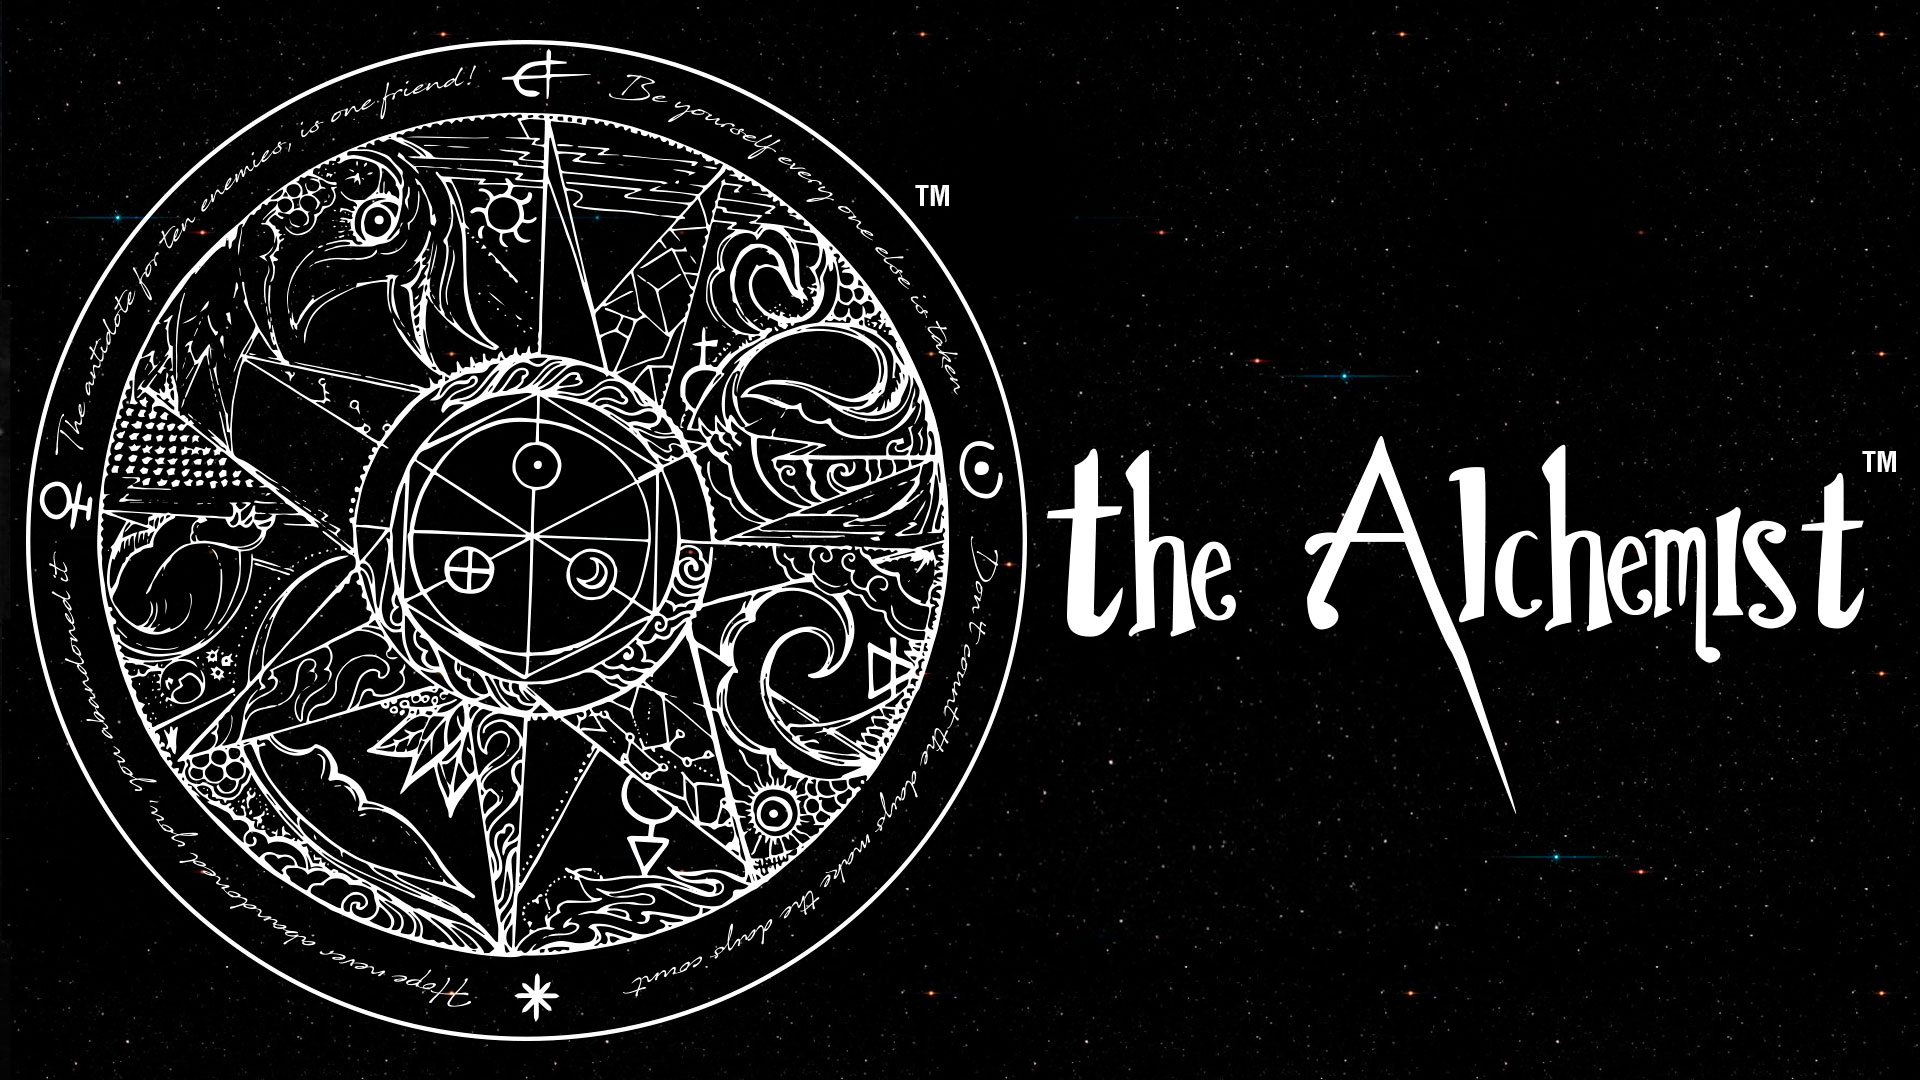 The Alchemist logo with in a black background